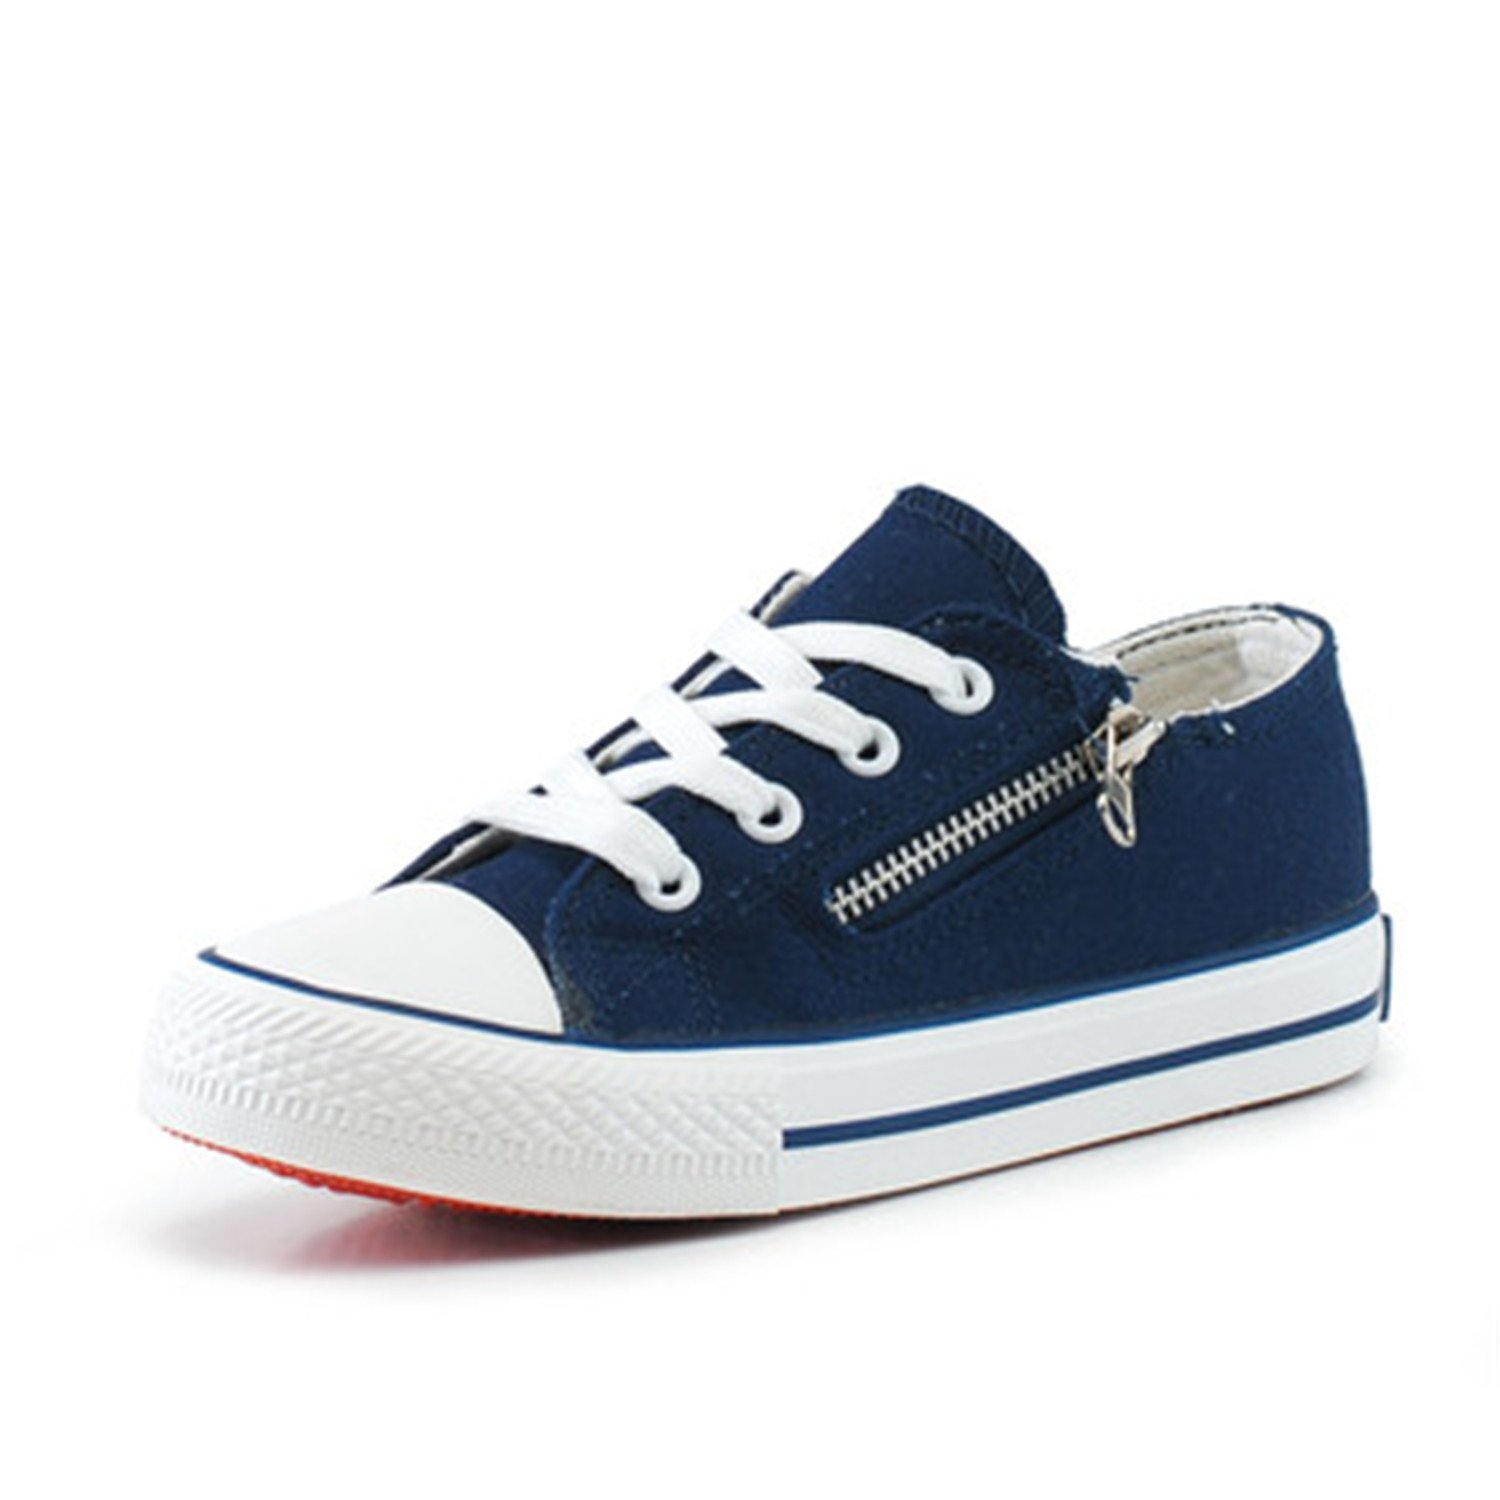 Wanyesta Kids Sneakers Spring Lace-up Canvas Shoes for Children Sport Breathable Denim Flat Sneakers